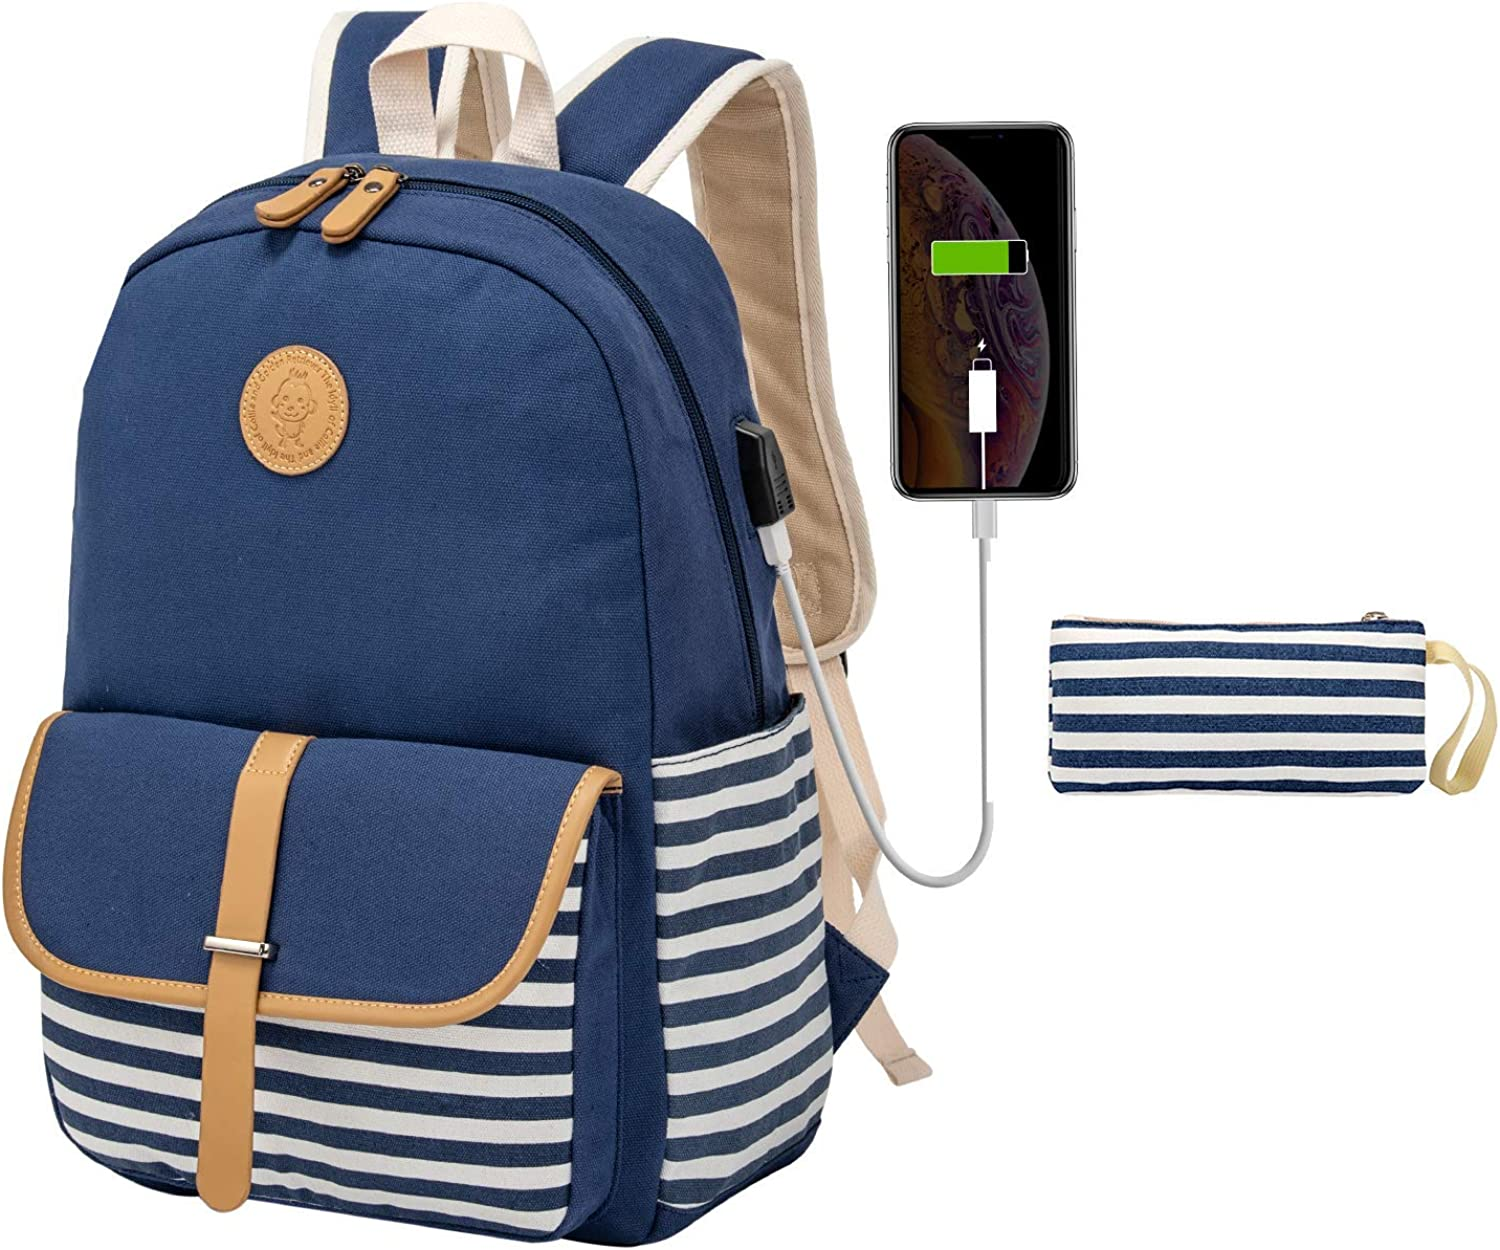 Kuston School Backpacks for Women Teen Girls with USB Charging Port Lightweight Canvas Book Bag Set 4 in 1